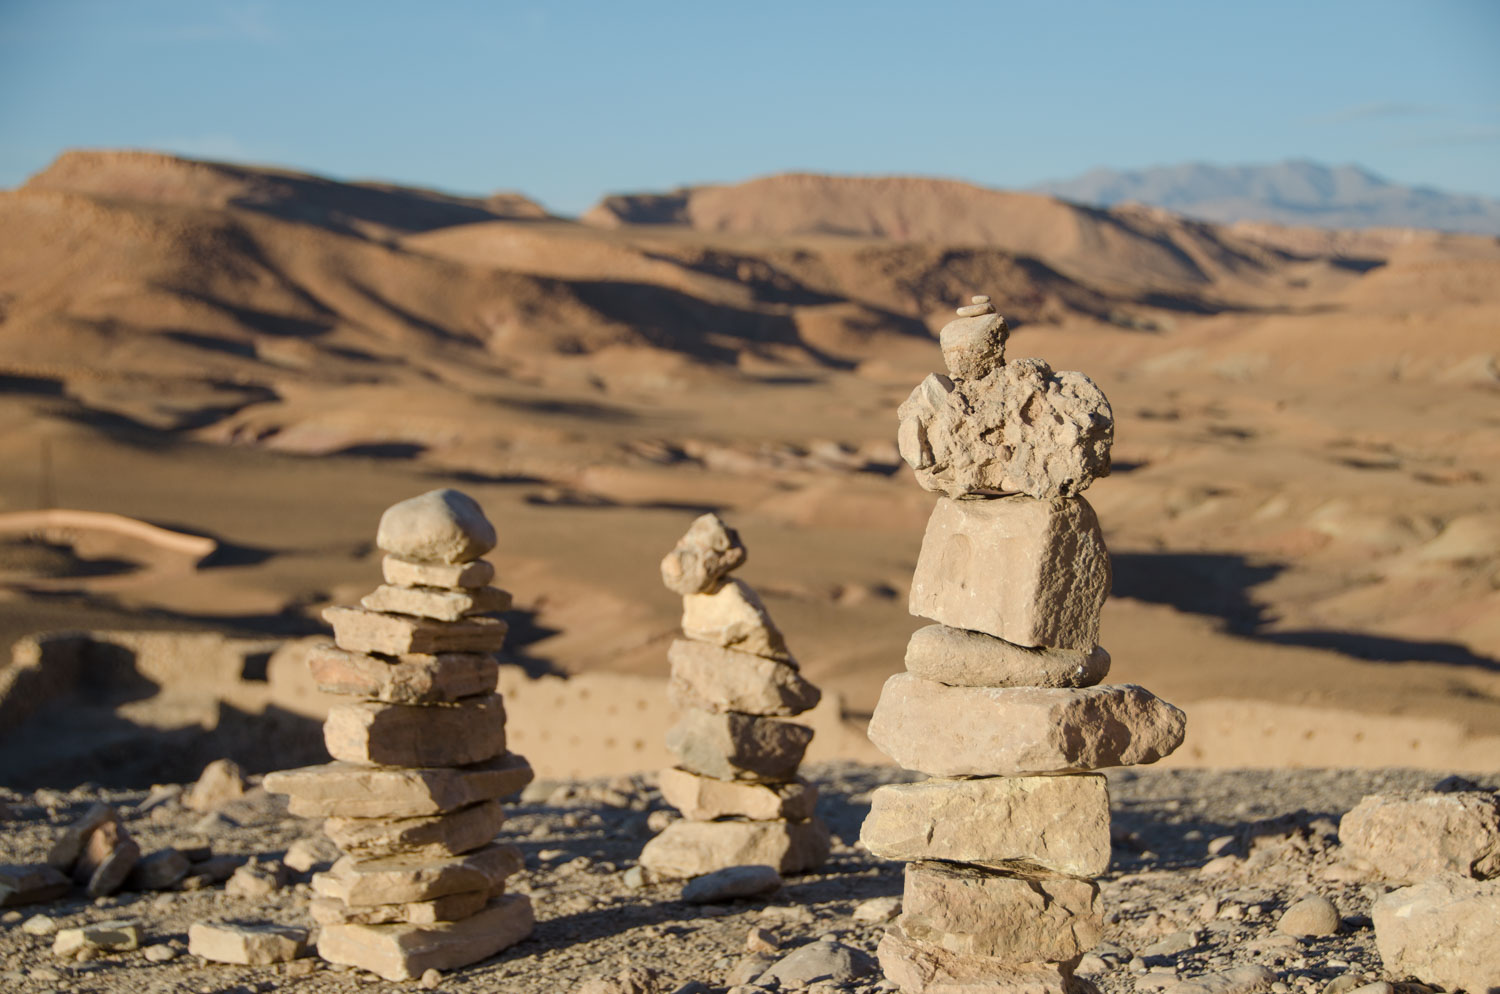 Image of cairns against a mountain